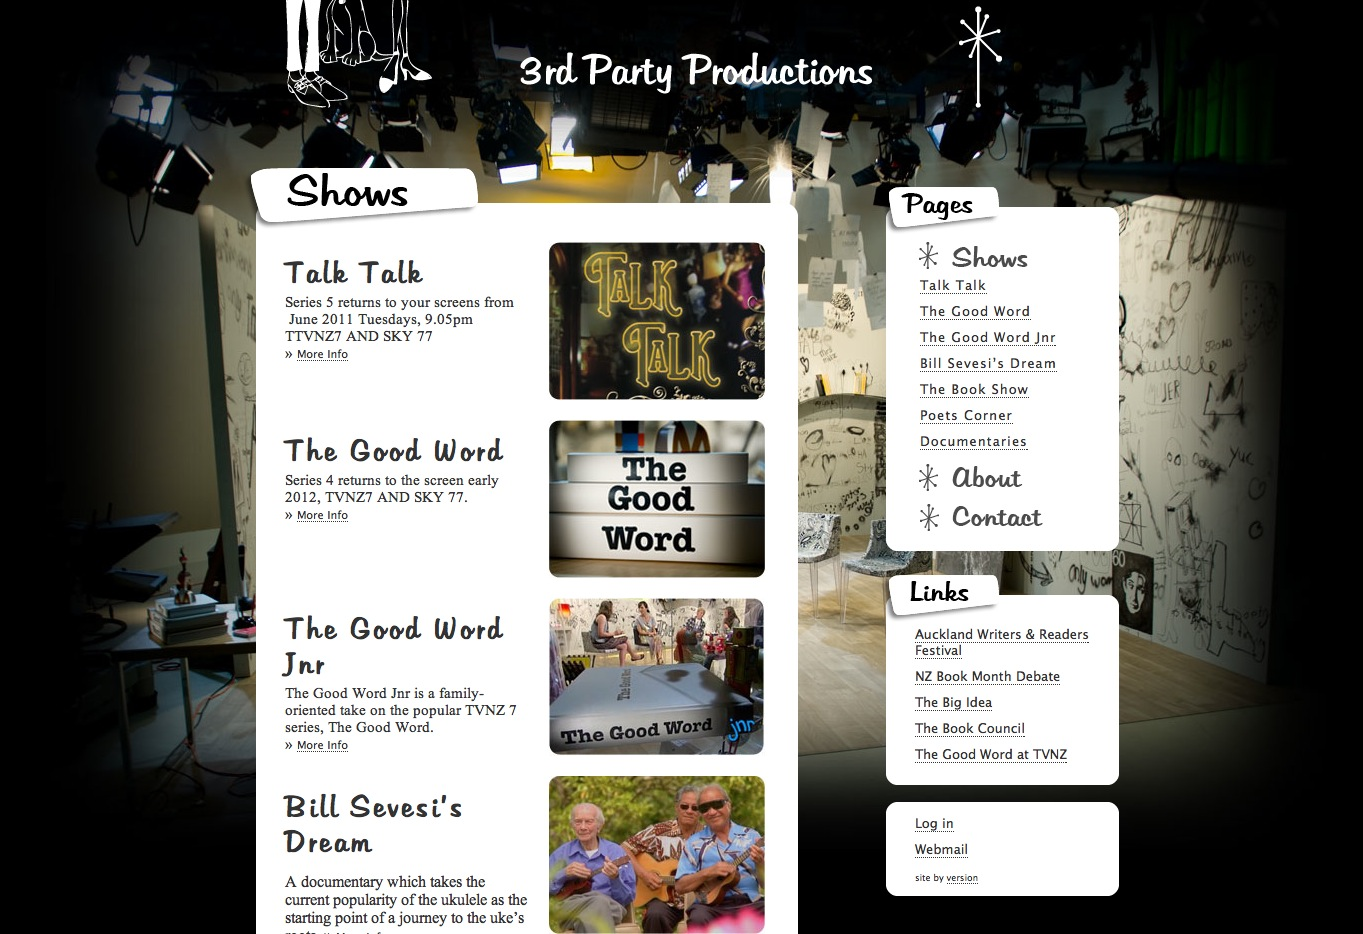 3rd Party Productions